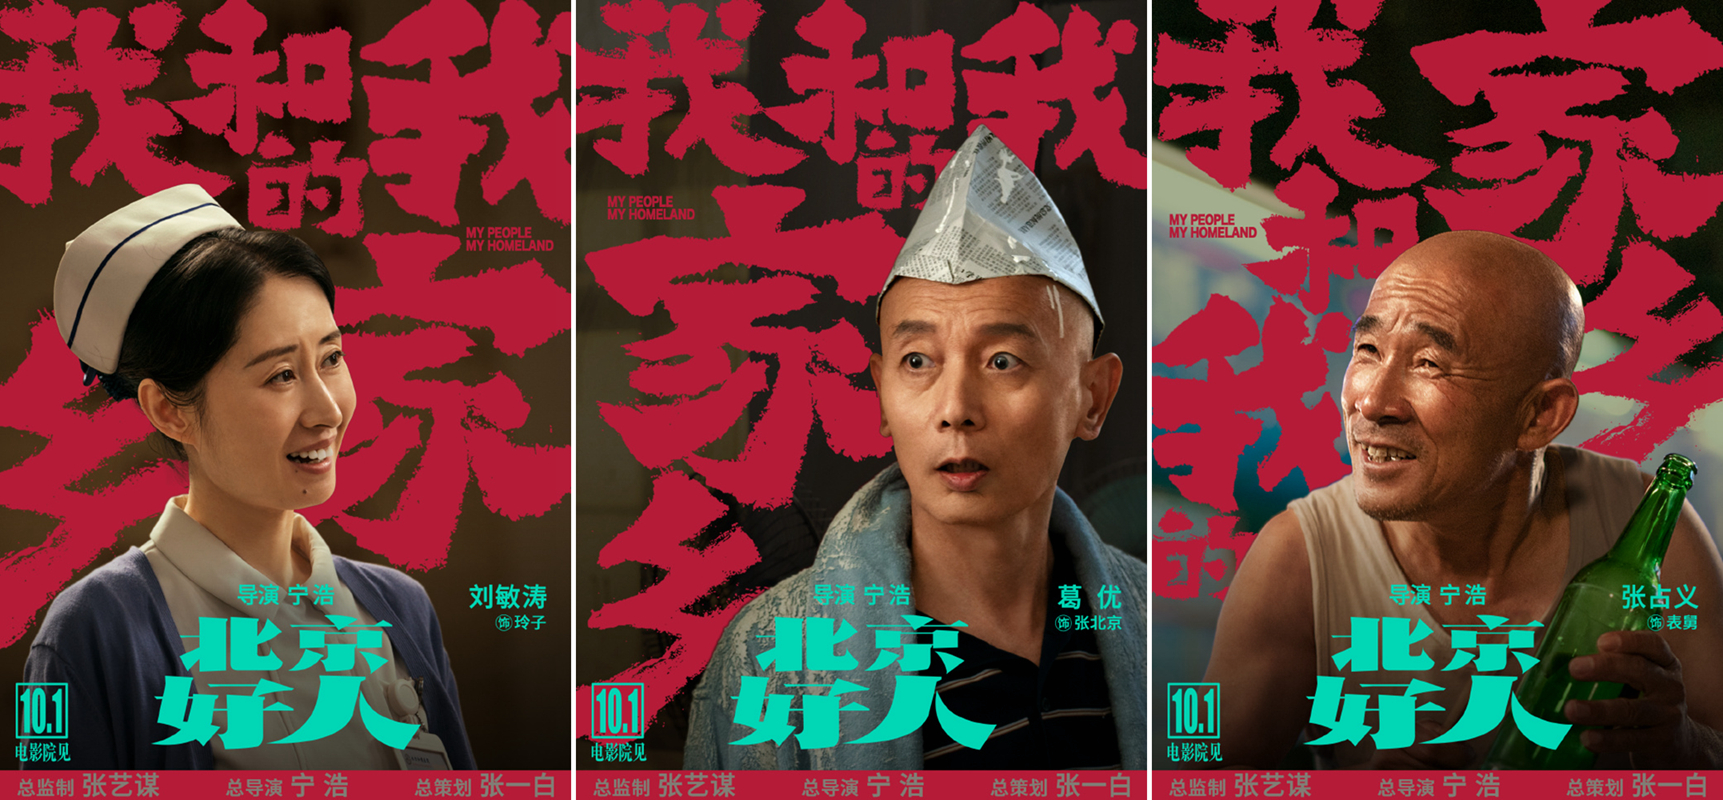 My People My Homeland tops China box office